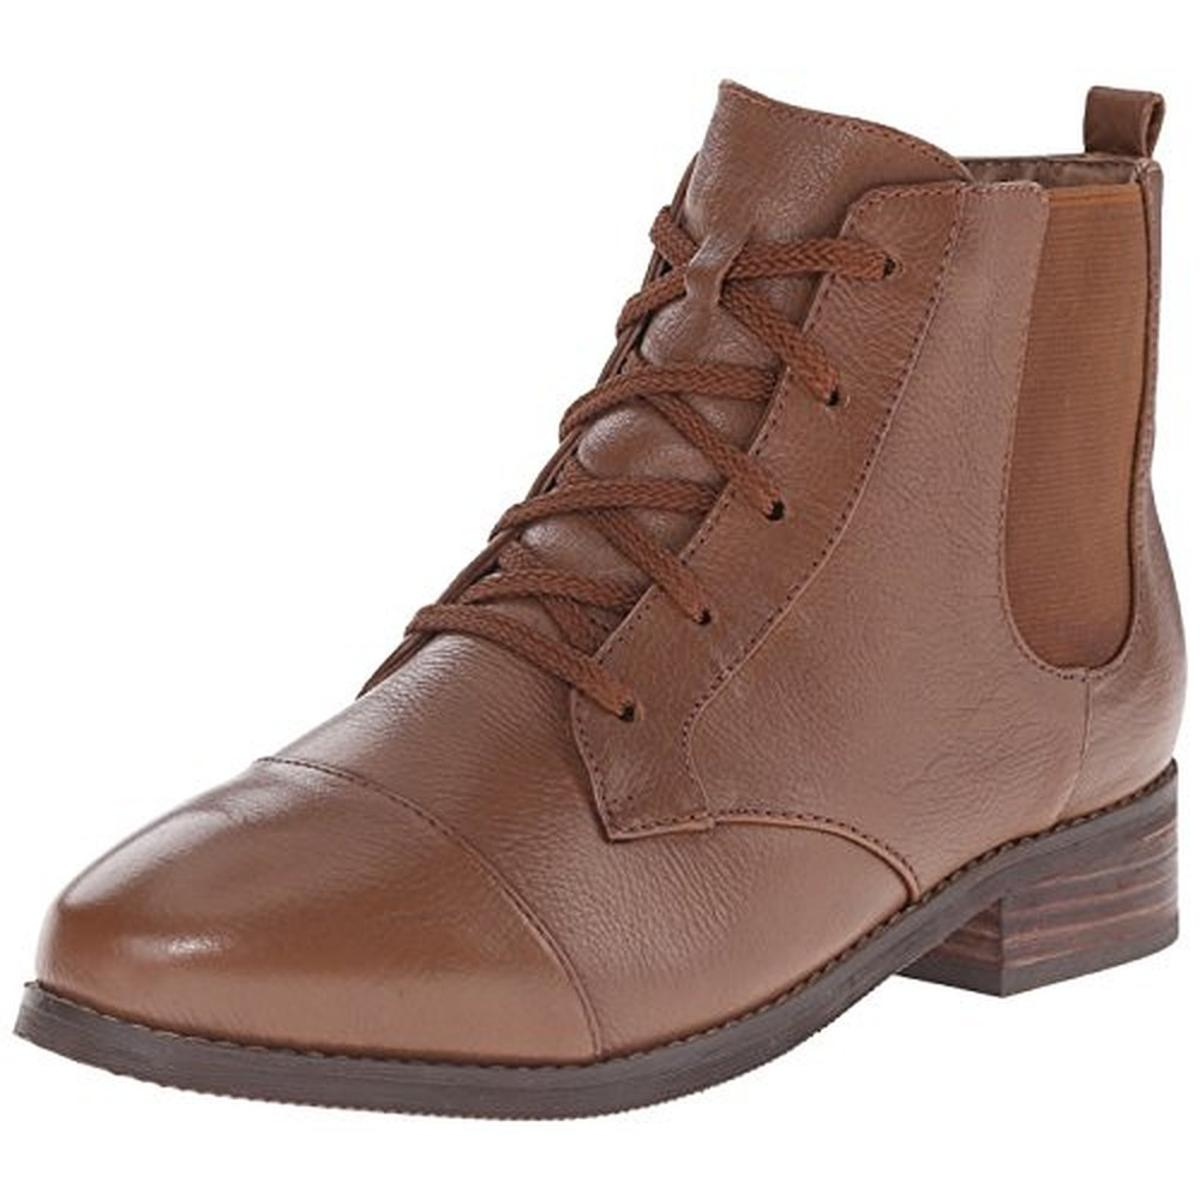 SoftWalk Womens Miller Leather Lace-Up Ankle Boots